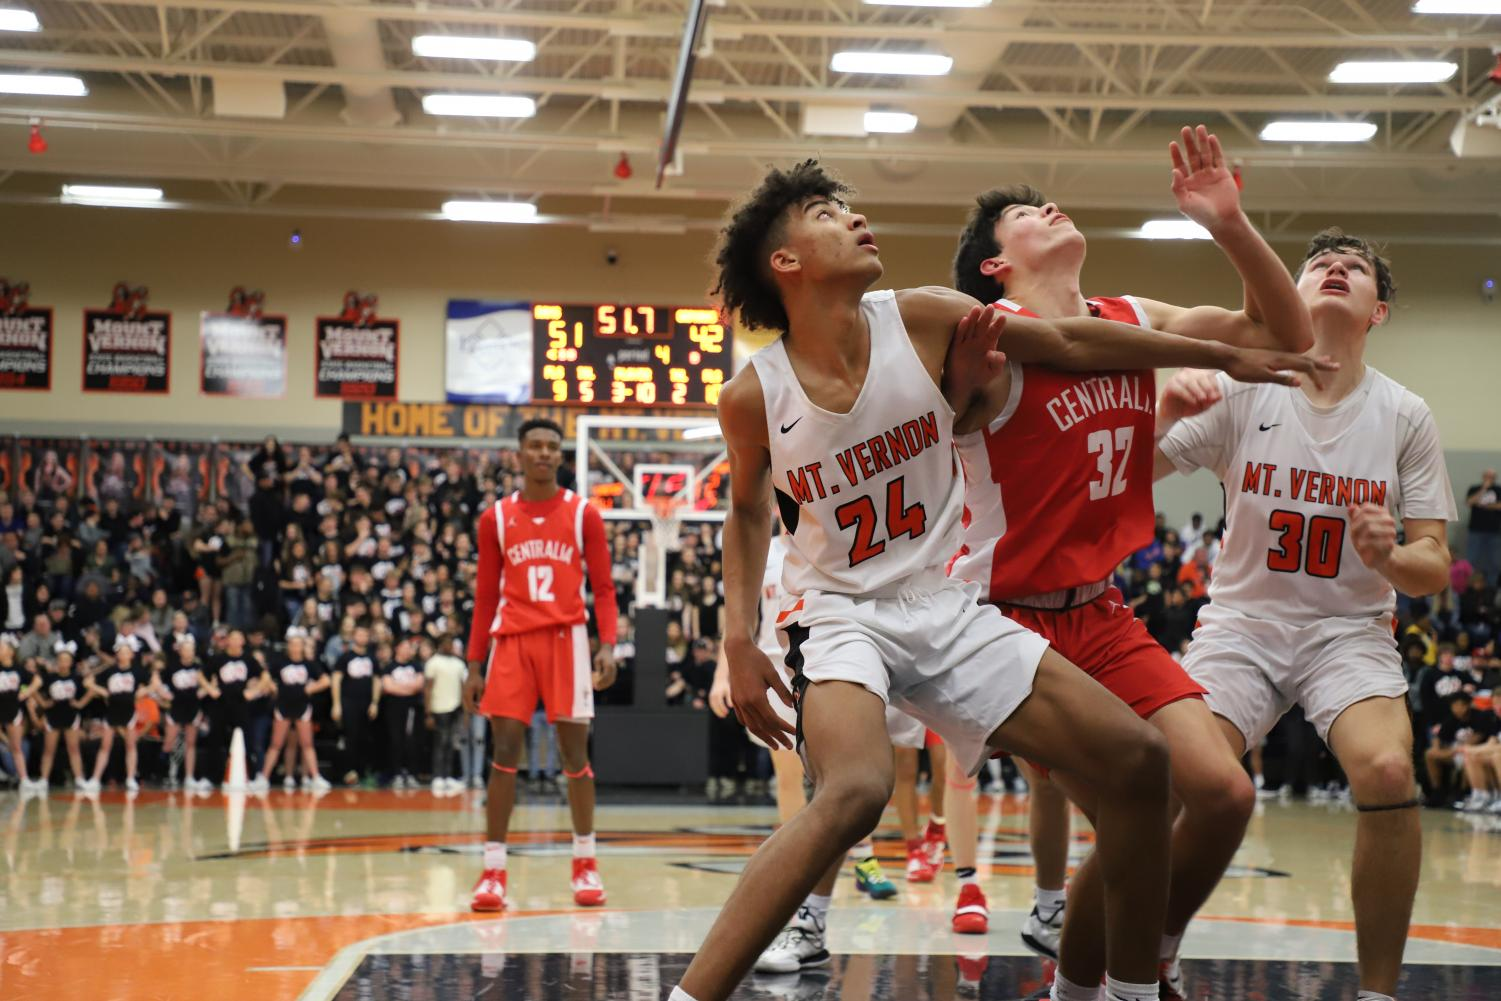 Rams prevail over Orphans in sold-out Changnon